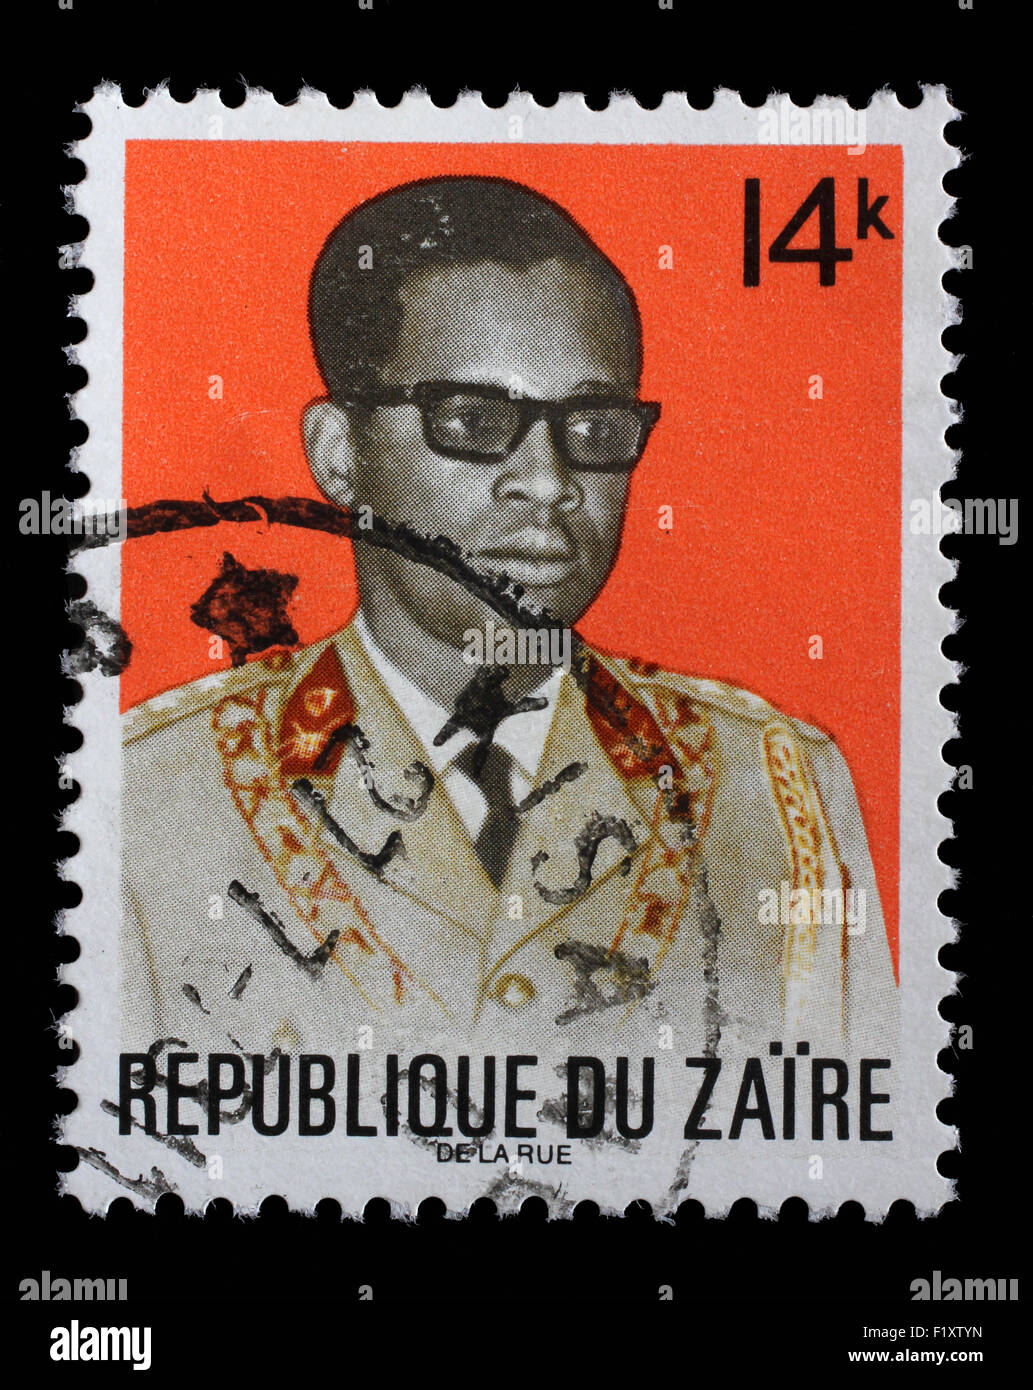 Stamp printed in the Zaire shows Joseph D. Mobutu, President of Zaire, 1965 - 1997, circa 1973 - Stock Image